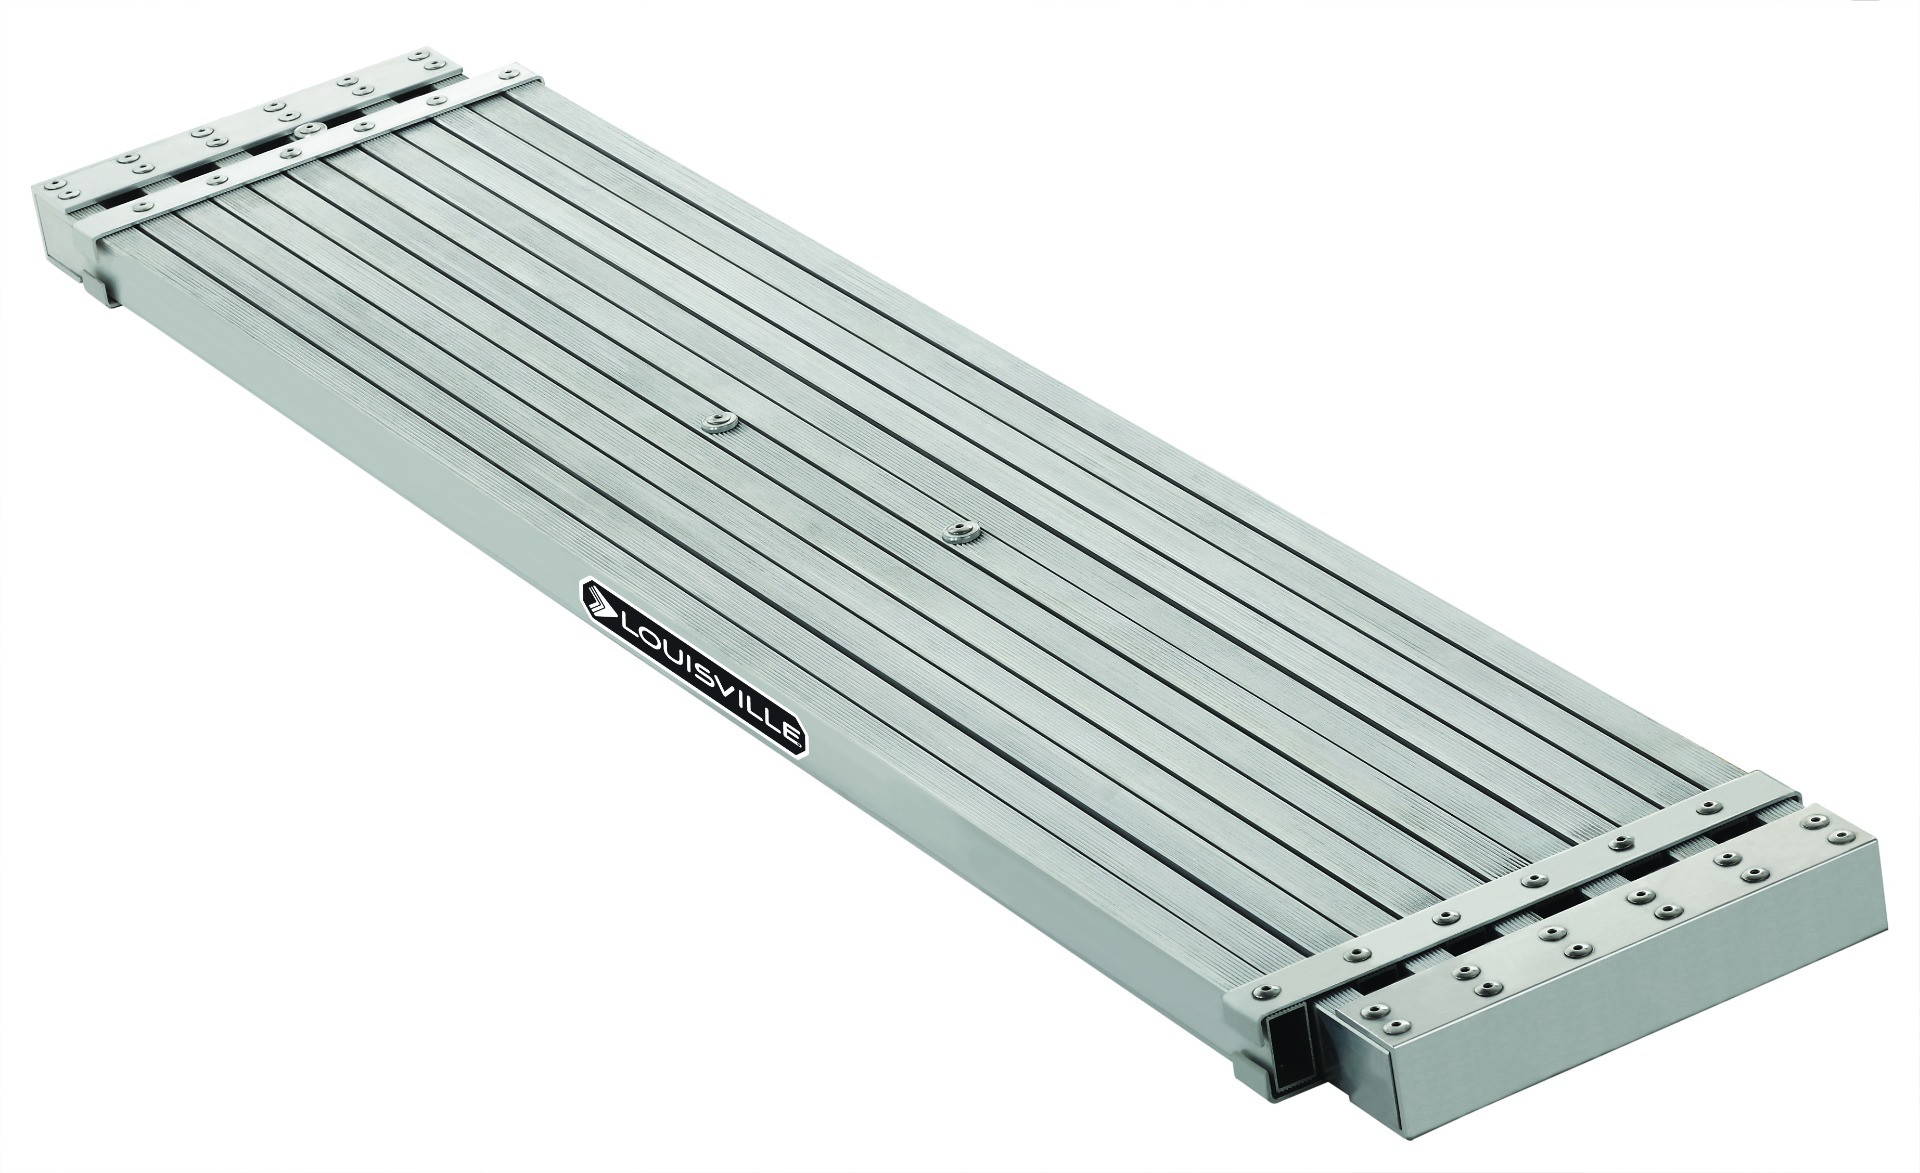 Louisville 9' Aluminium Medium-Duty Telescoping Plank 250lb. Rated